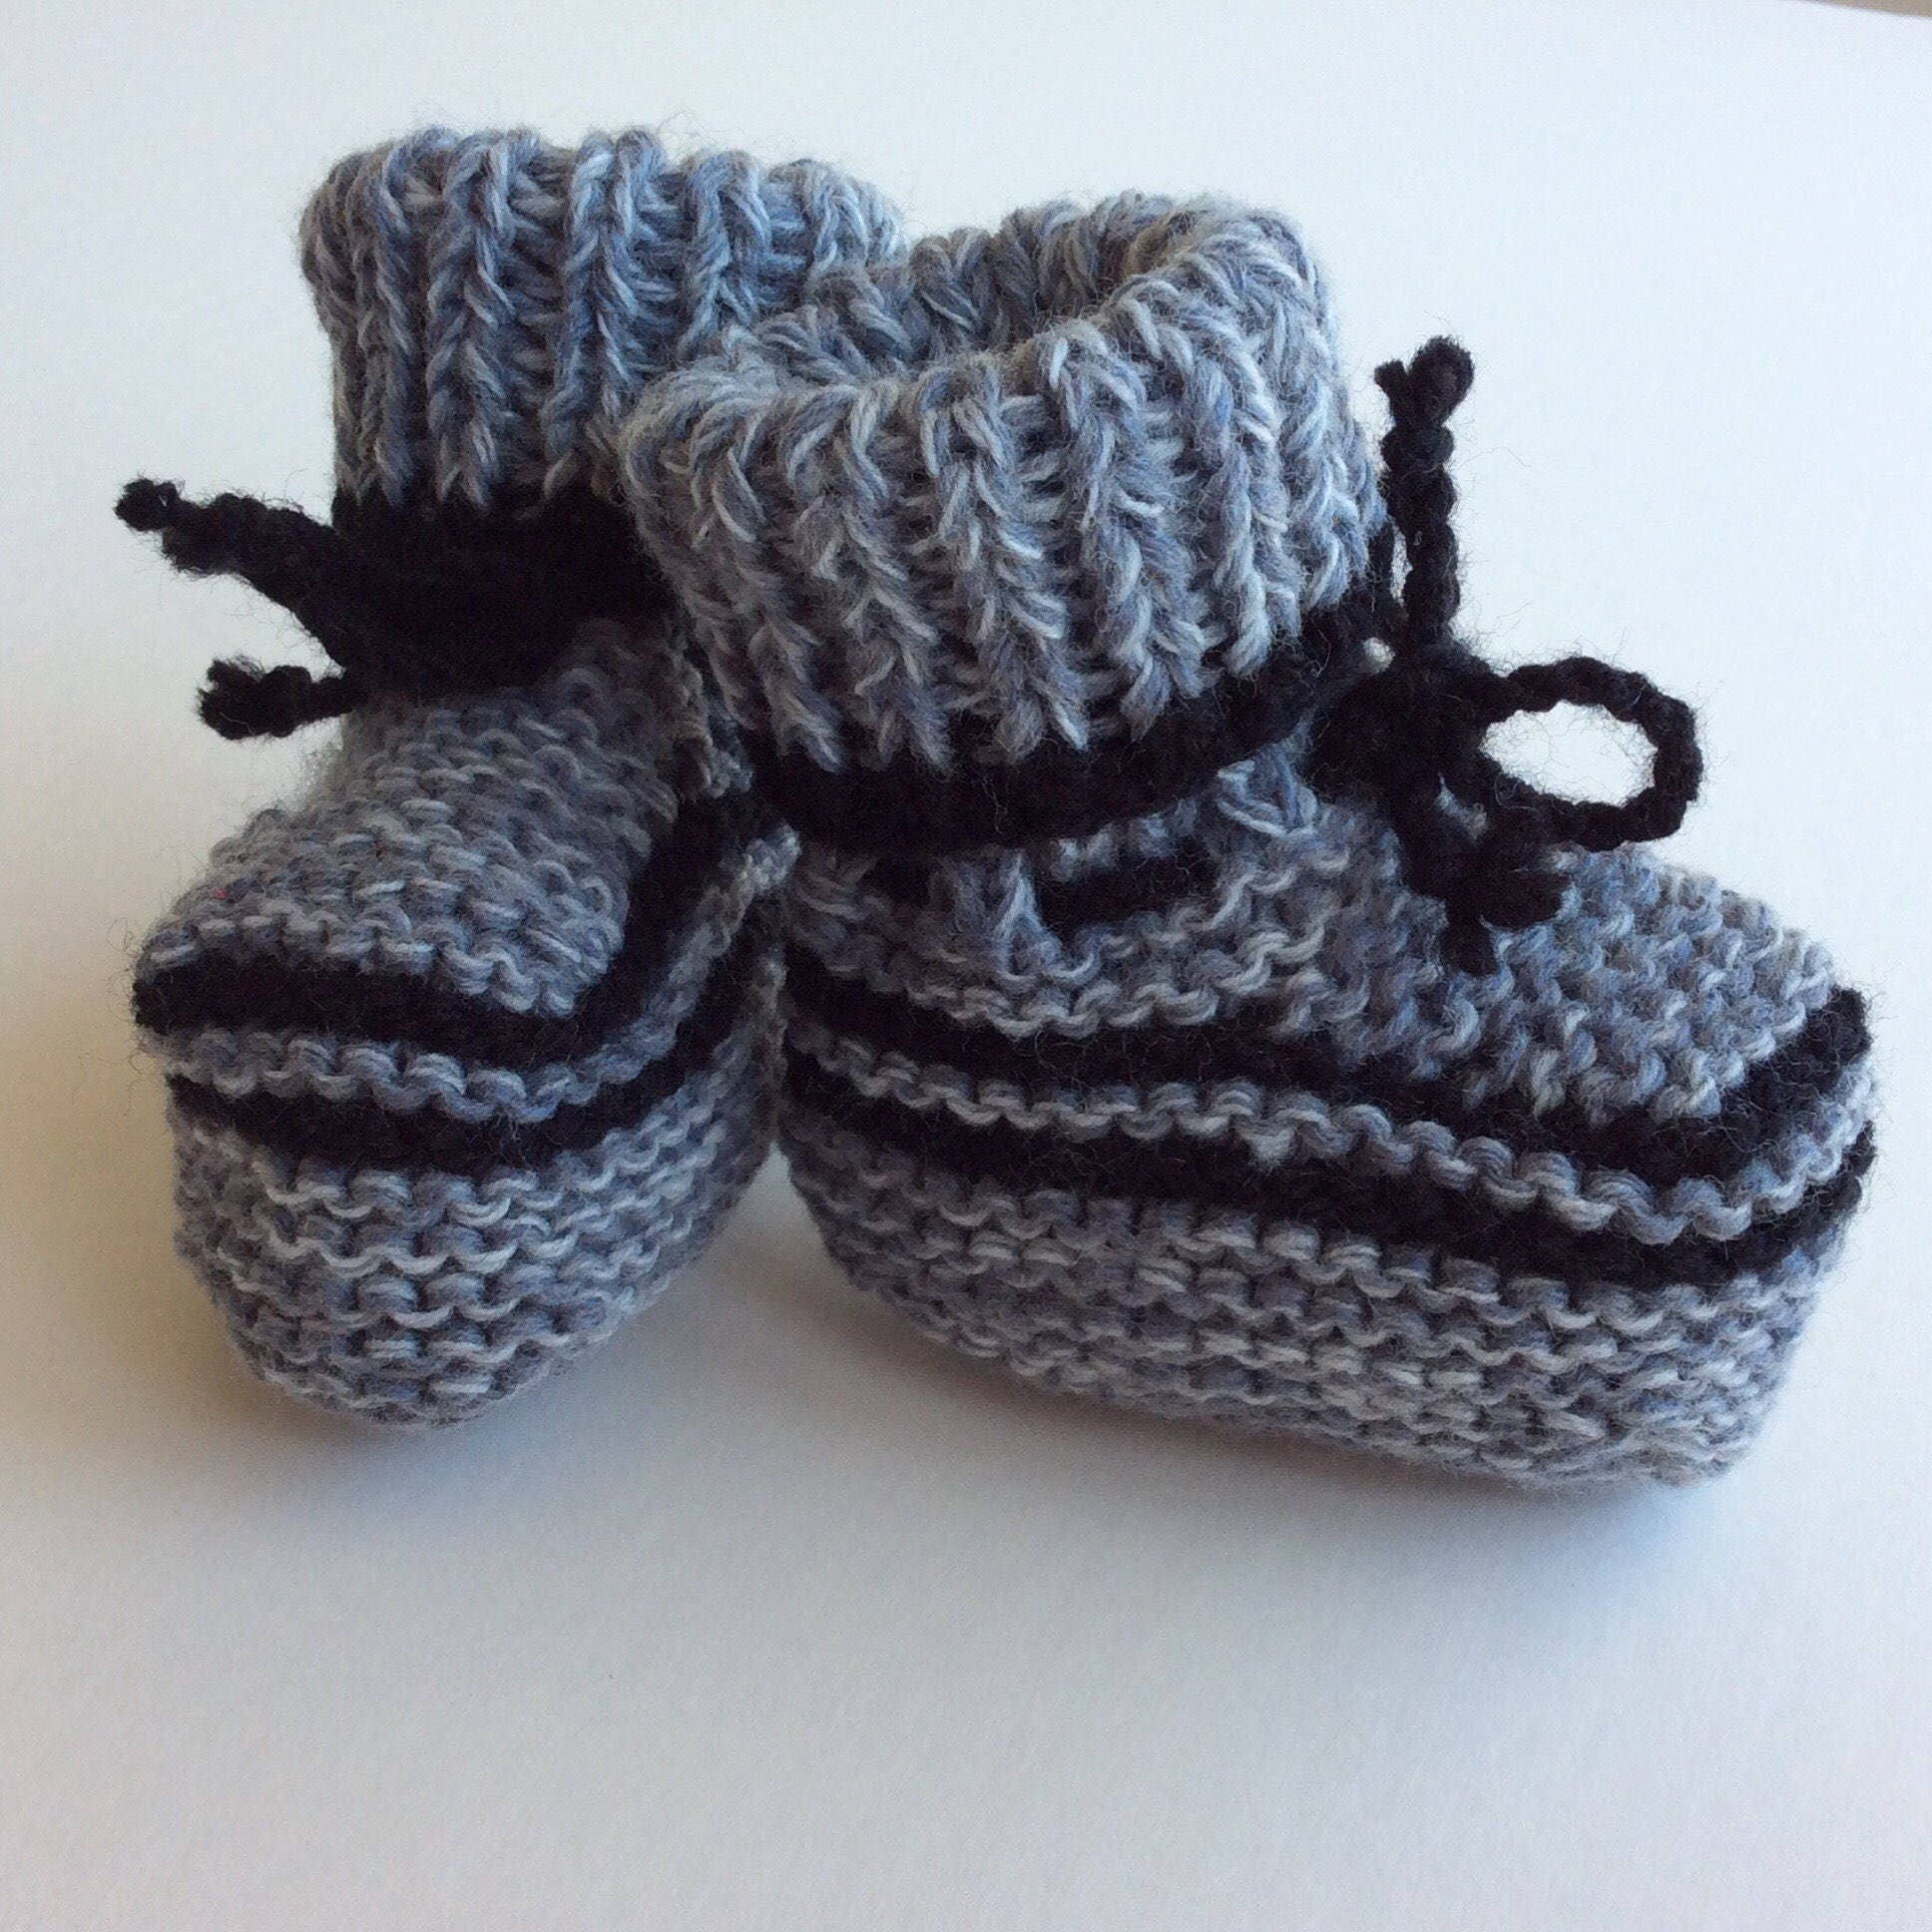 dfbf18d3ee8d7 hand knitted baby booties, unisex baby clothes, baby boy clothes, baby girl  clothes, grey and black babywear, warm baby shoes, 0-3 months